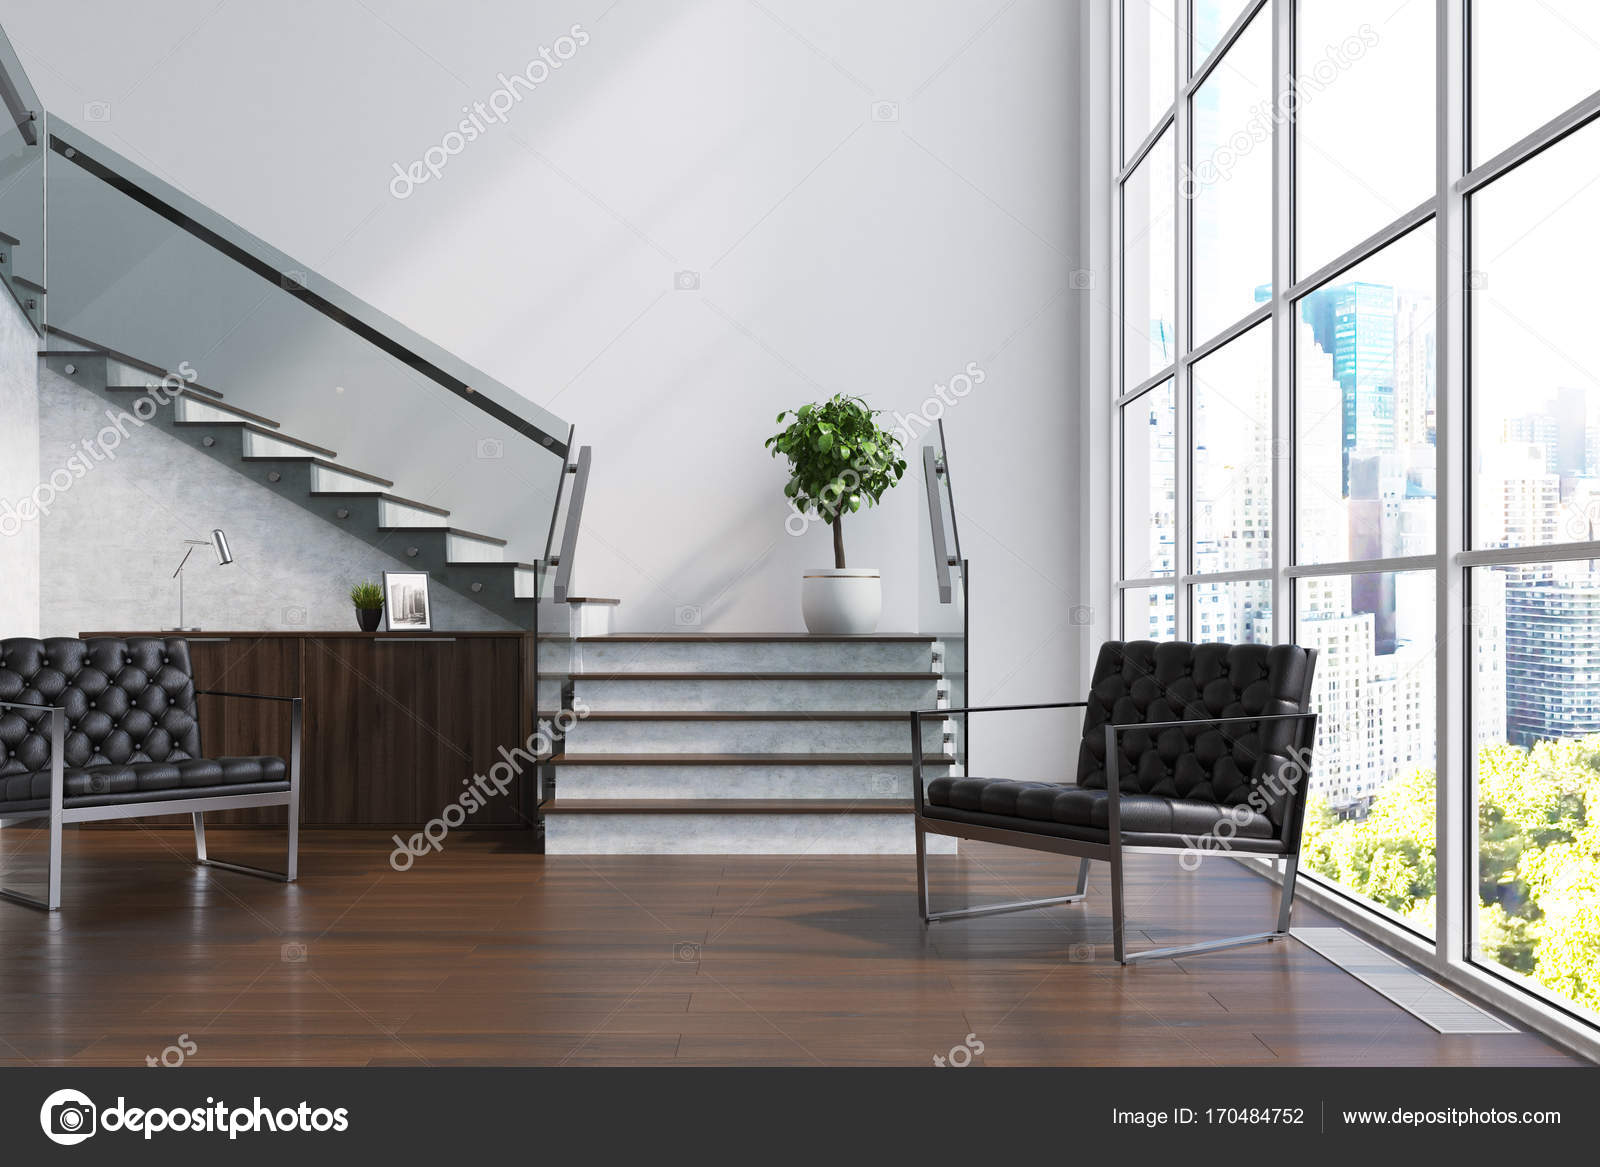 Wit woonkamer, trap, Fauteuils — Stockfoto © denisismagilov #170484752